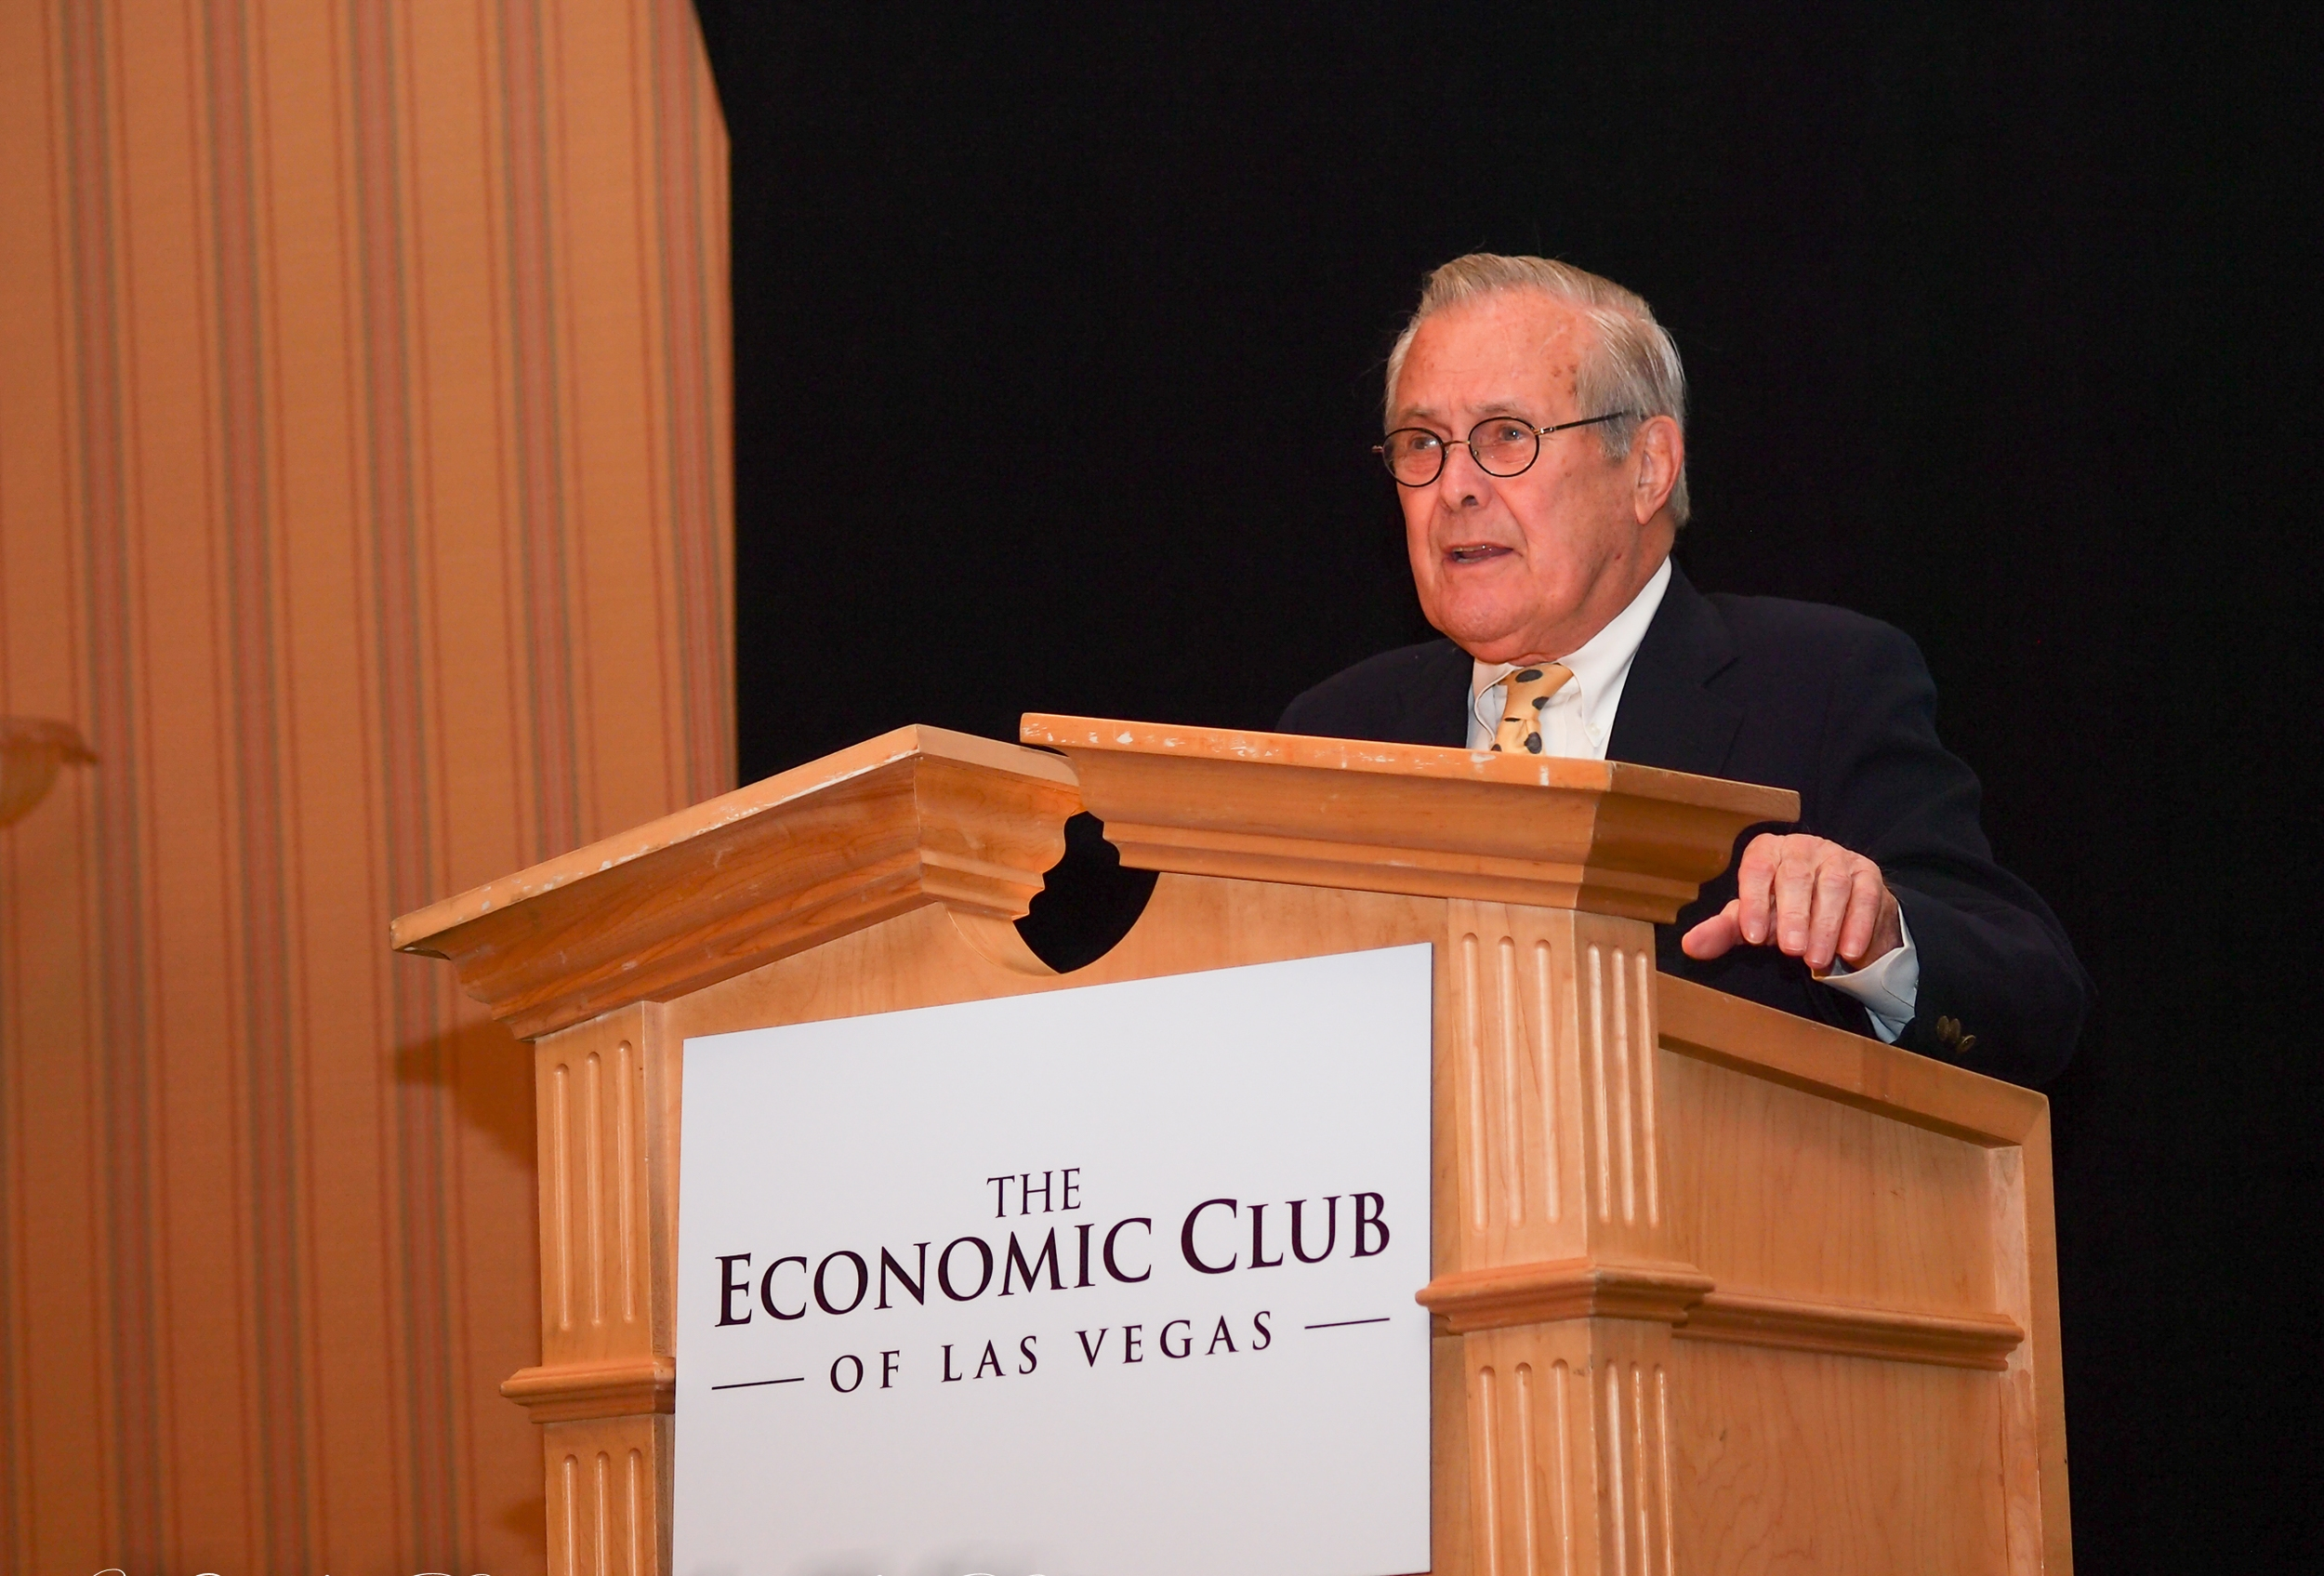 Donald Rumsfeld - Former U.S. Secretary of Defense